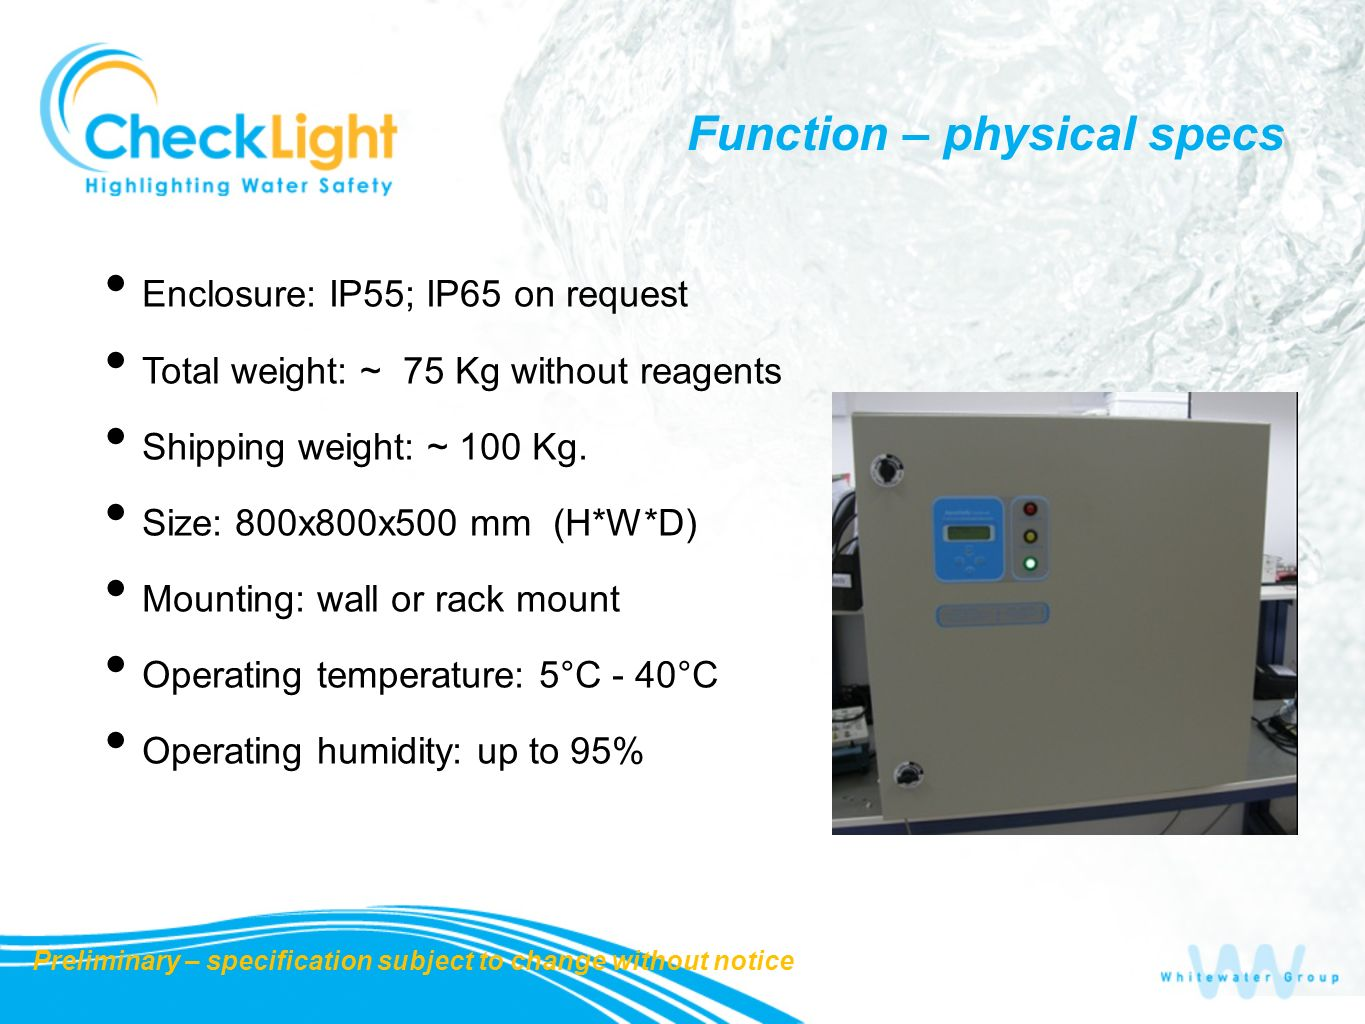 Function – physical specs Enclosure: IP55; IP65 on request Total weight: ~ 75 Kg without reagents Shipping weight: ~ 100 Kg. Size: 800x800x500 mm (H*W